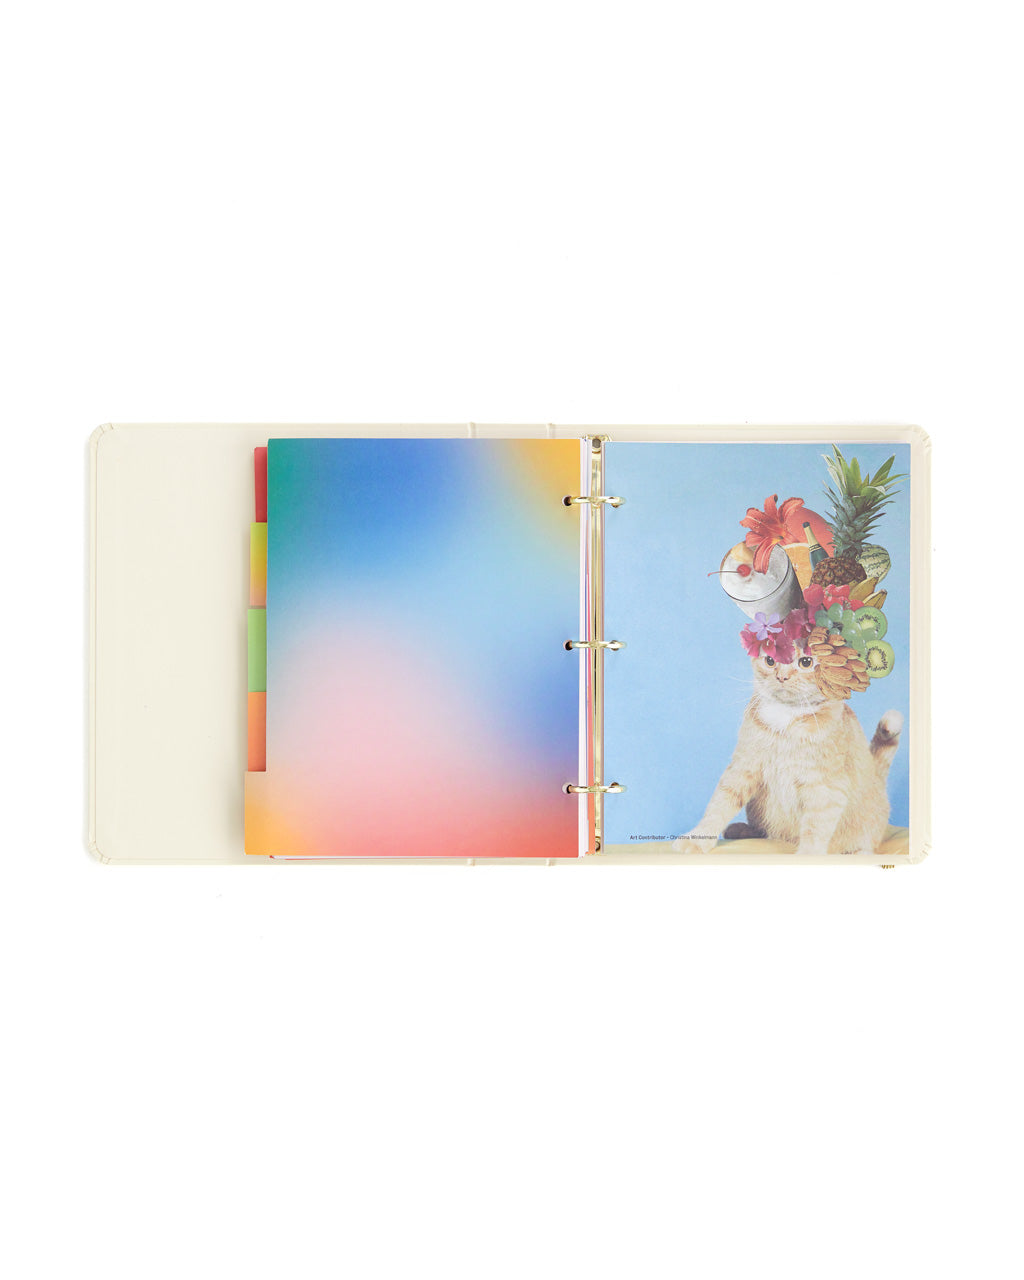 Interior pages with bright colorful art work included